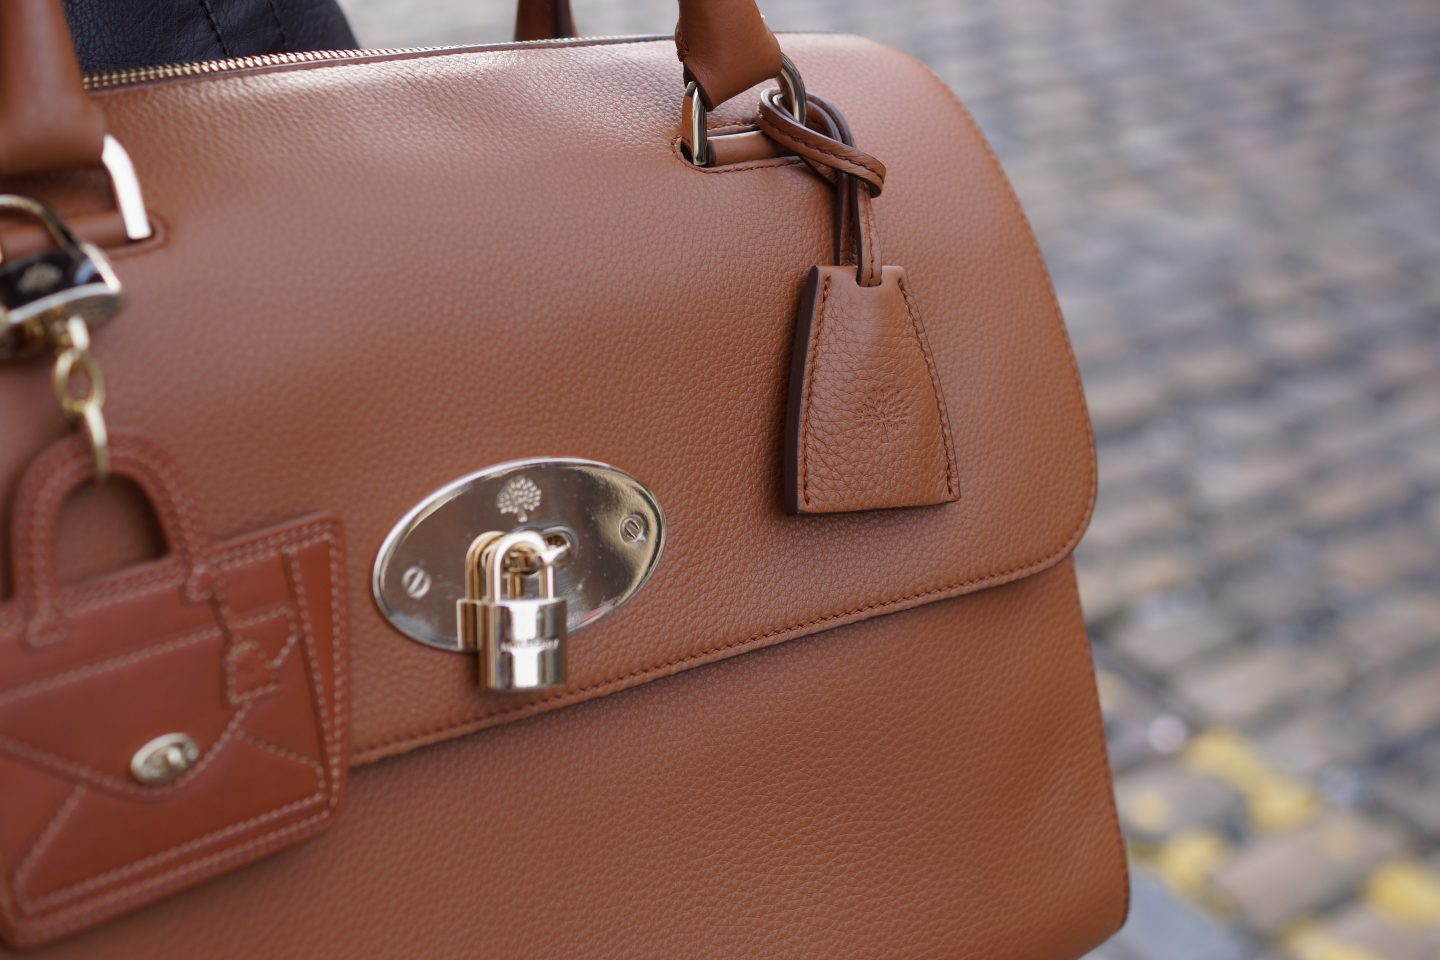 Style | It's All About The Mulberry Bag